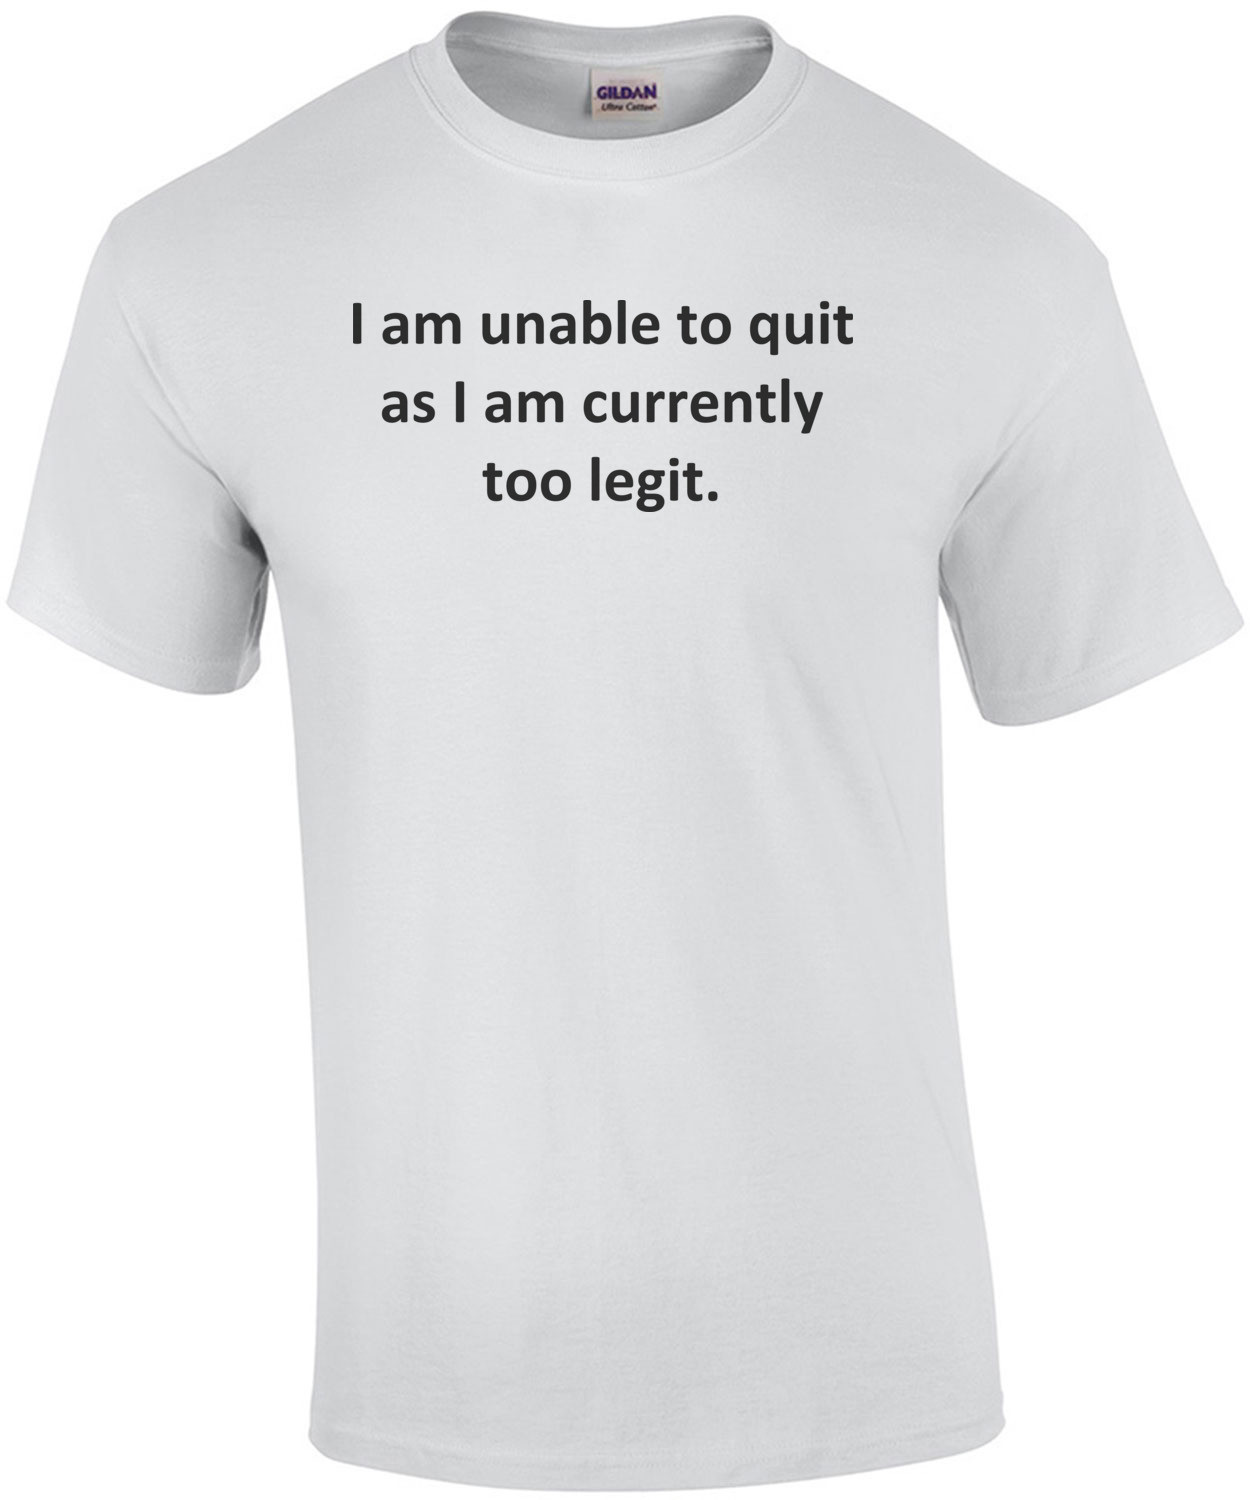 I am unable to quit as I am currently too legit. T-Shirt